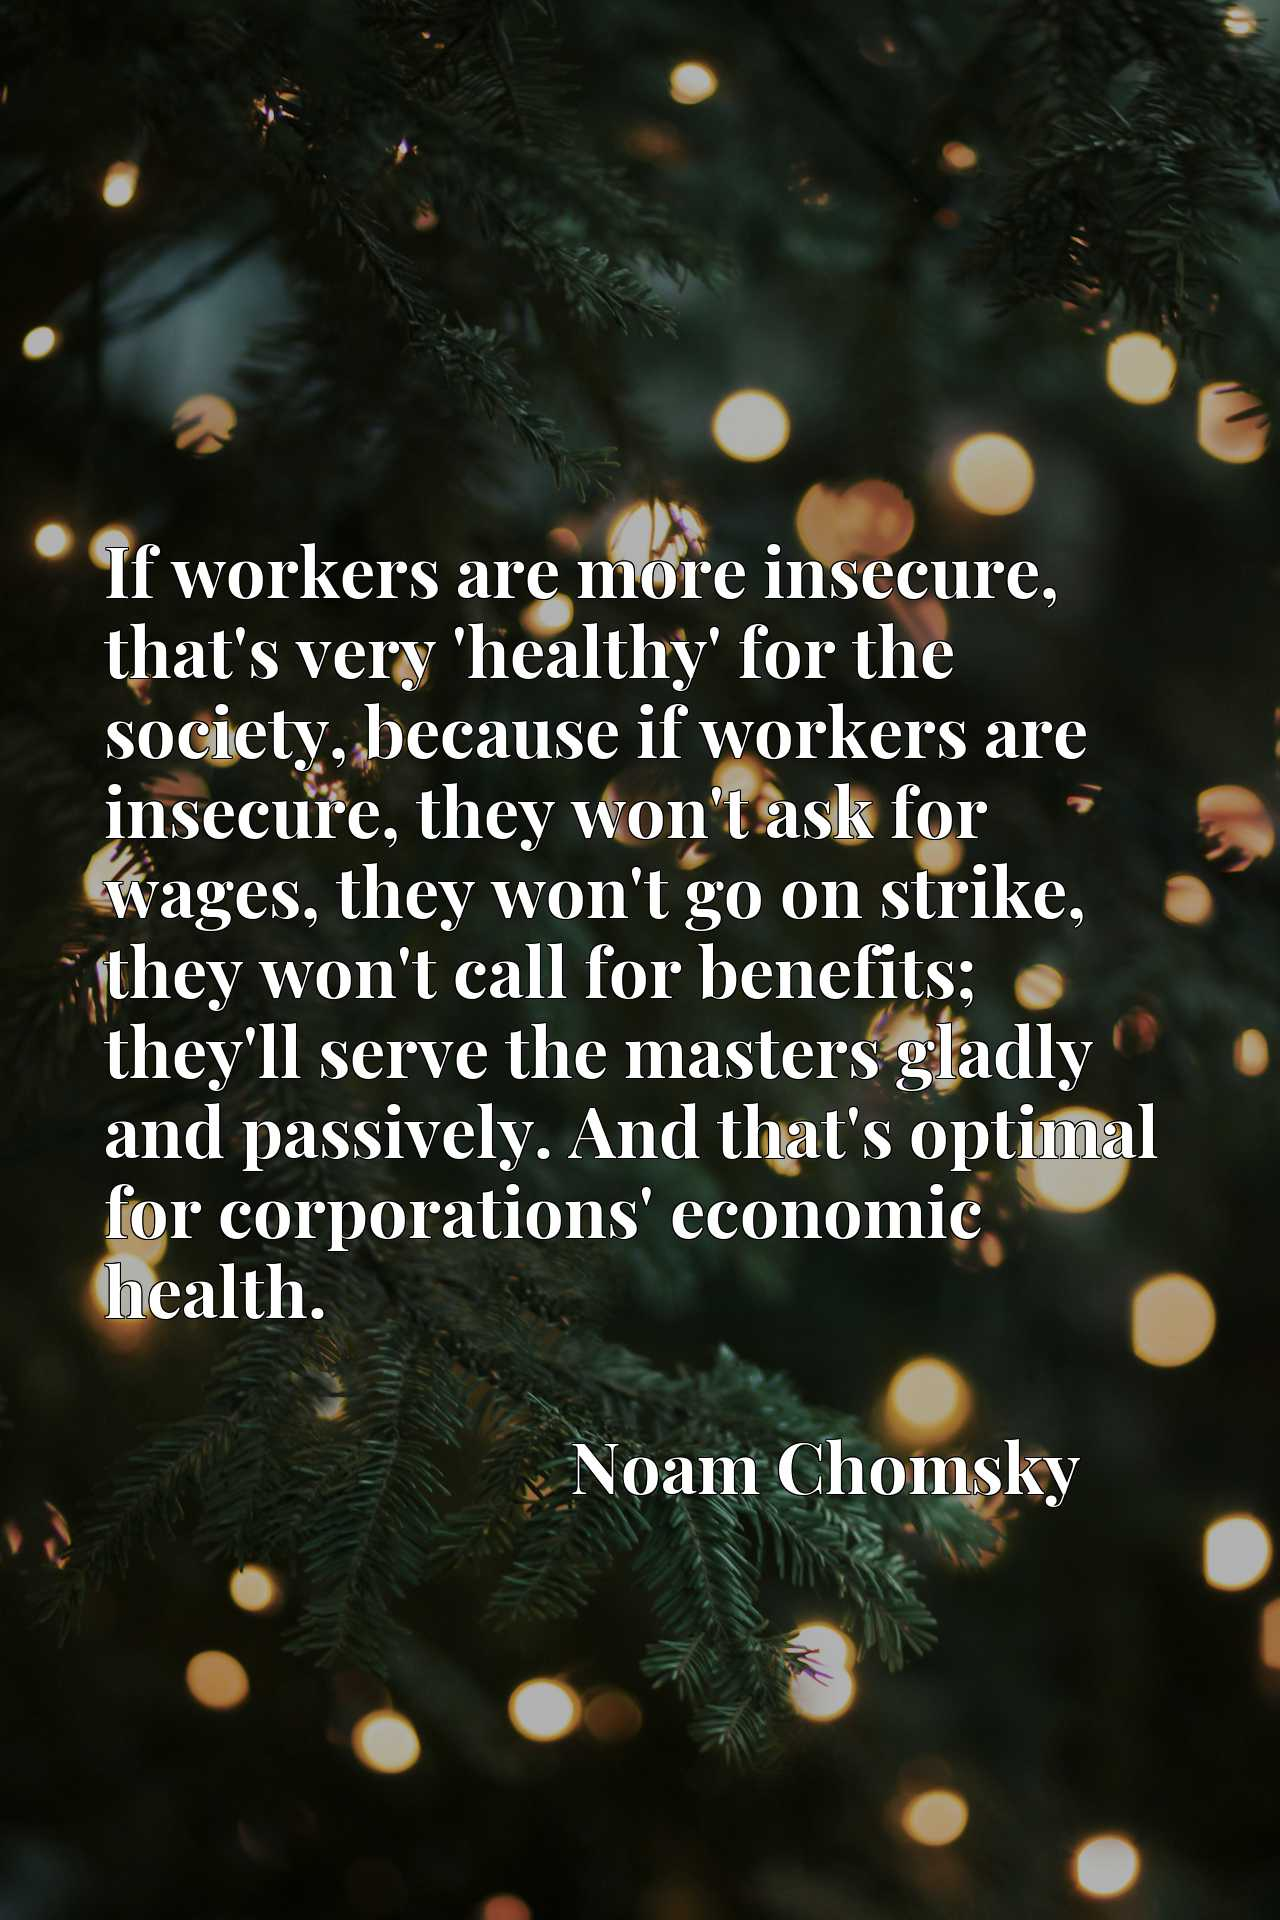 If workers are more insecure, that's very 'healthy' for the society, because if workers are insecure, they won't ask for wages, they won't go on strike, they won't call for benefits; they'll serve the masters gladly and passively. And that's optimal for corporations' economic health.